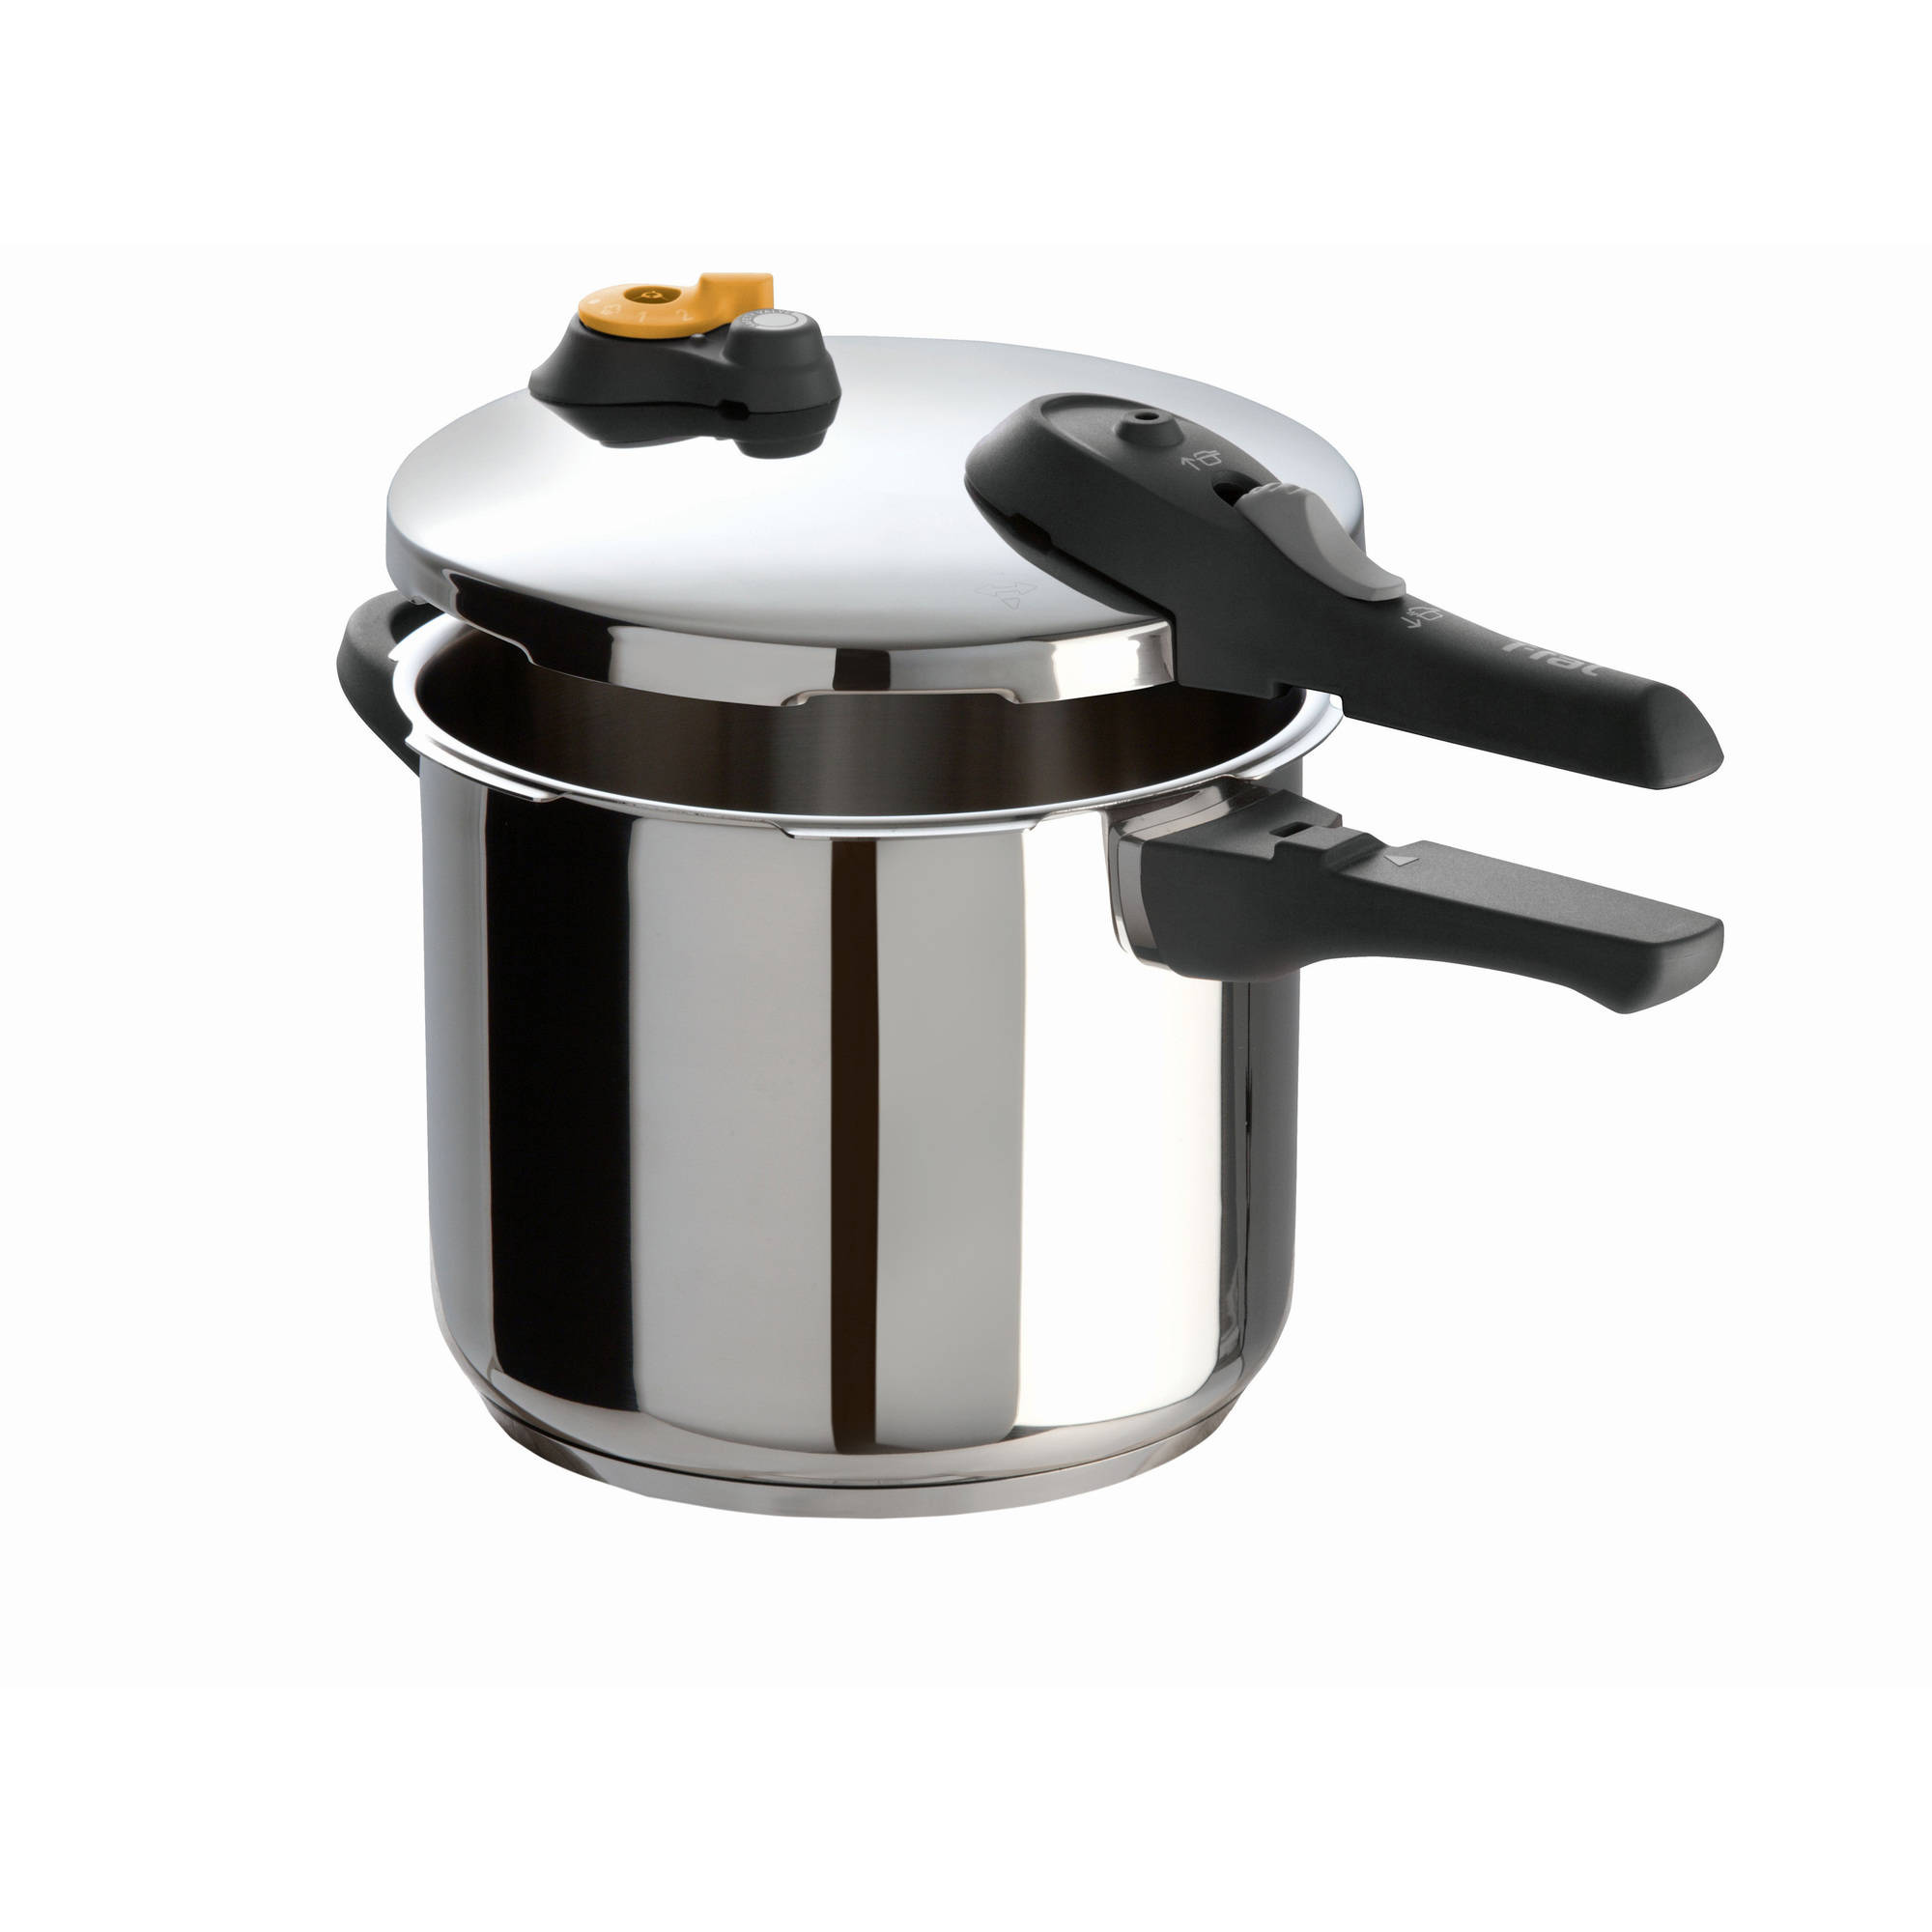 Clipso Stainless Steel 6.3-Quart Pressure Cooker